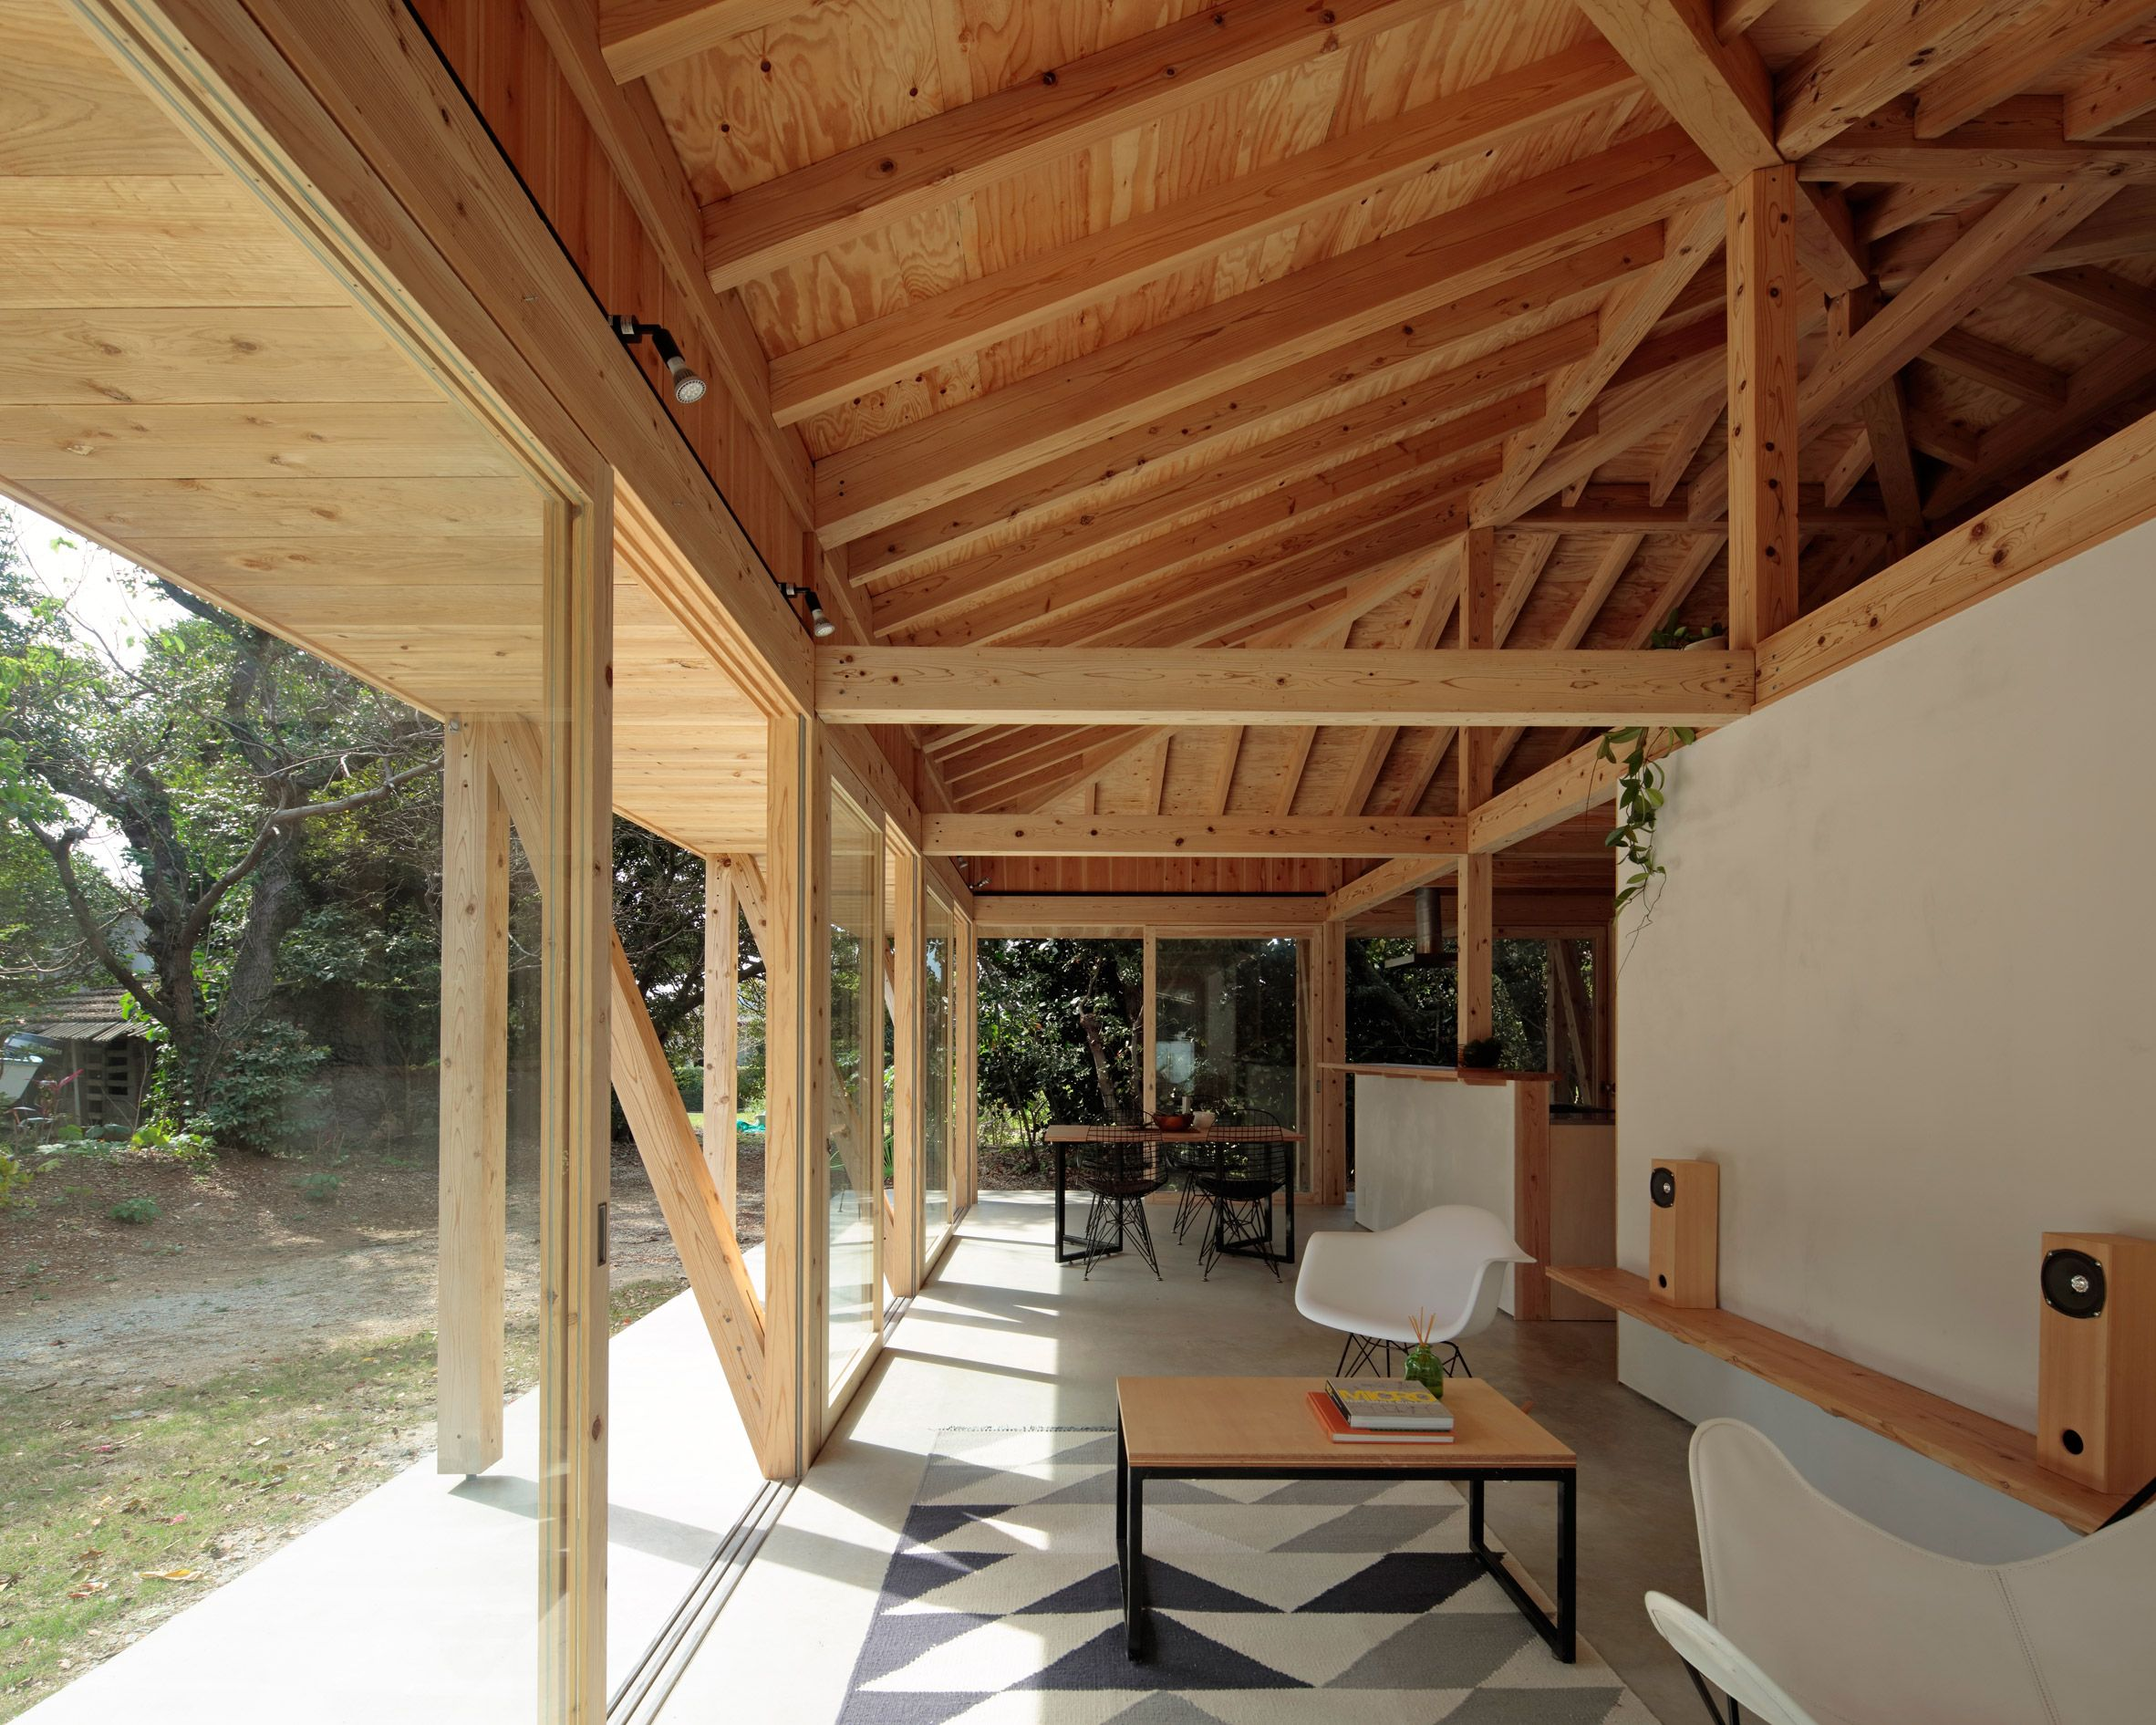 Best Kitchen Gallery: Shinminka By Isshoarchitects Architecture Pinterest Timber of Tropical House Number Frames on rachelxblog.com